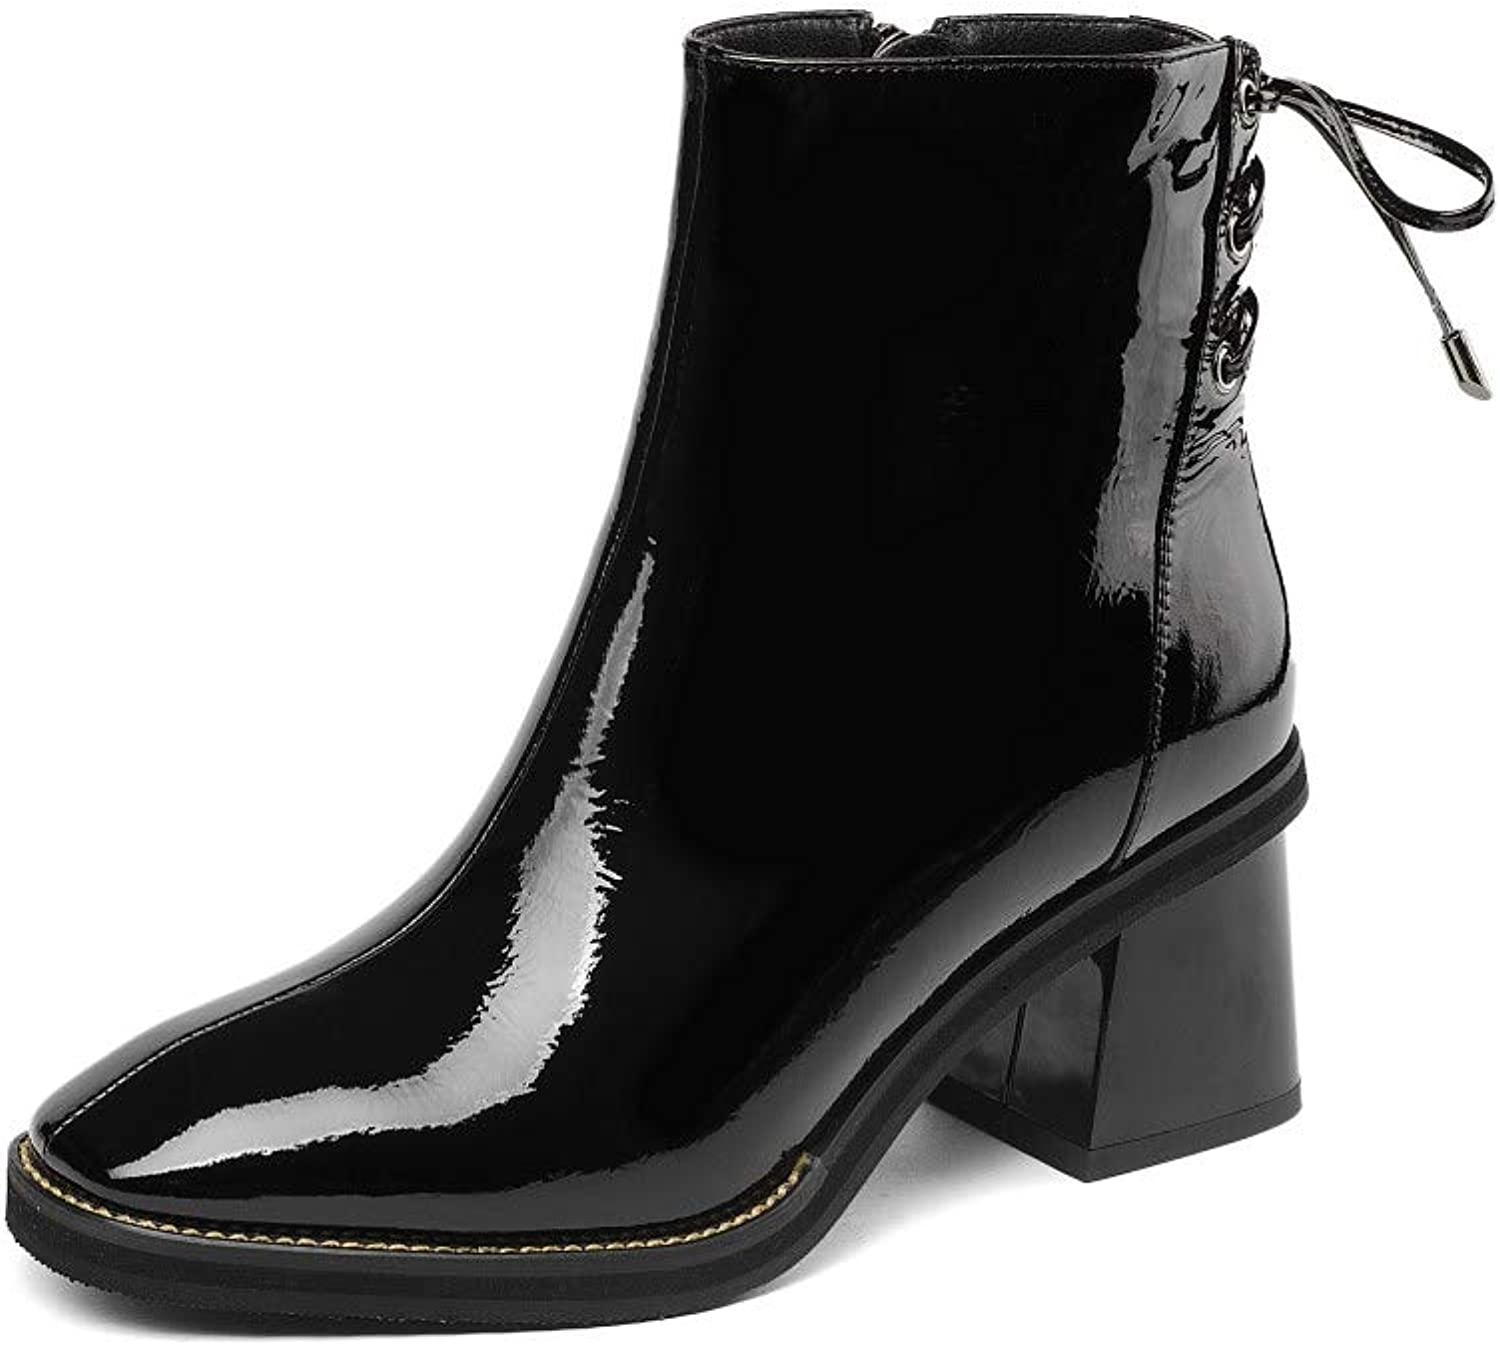 Nine Seven Patent Leather Women's Square Toe Mid Chunky Heel Lace Up Ankle Booties Handmade Dress Boots with Bowknot (7.5, Black)